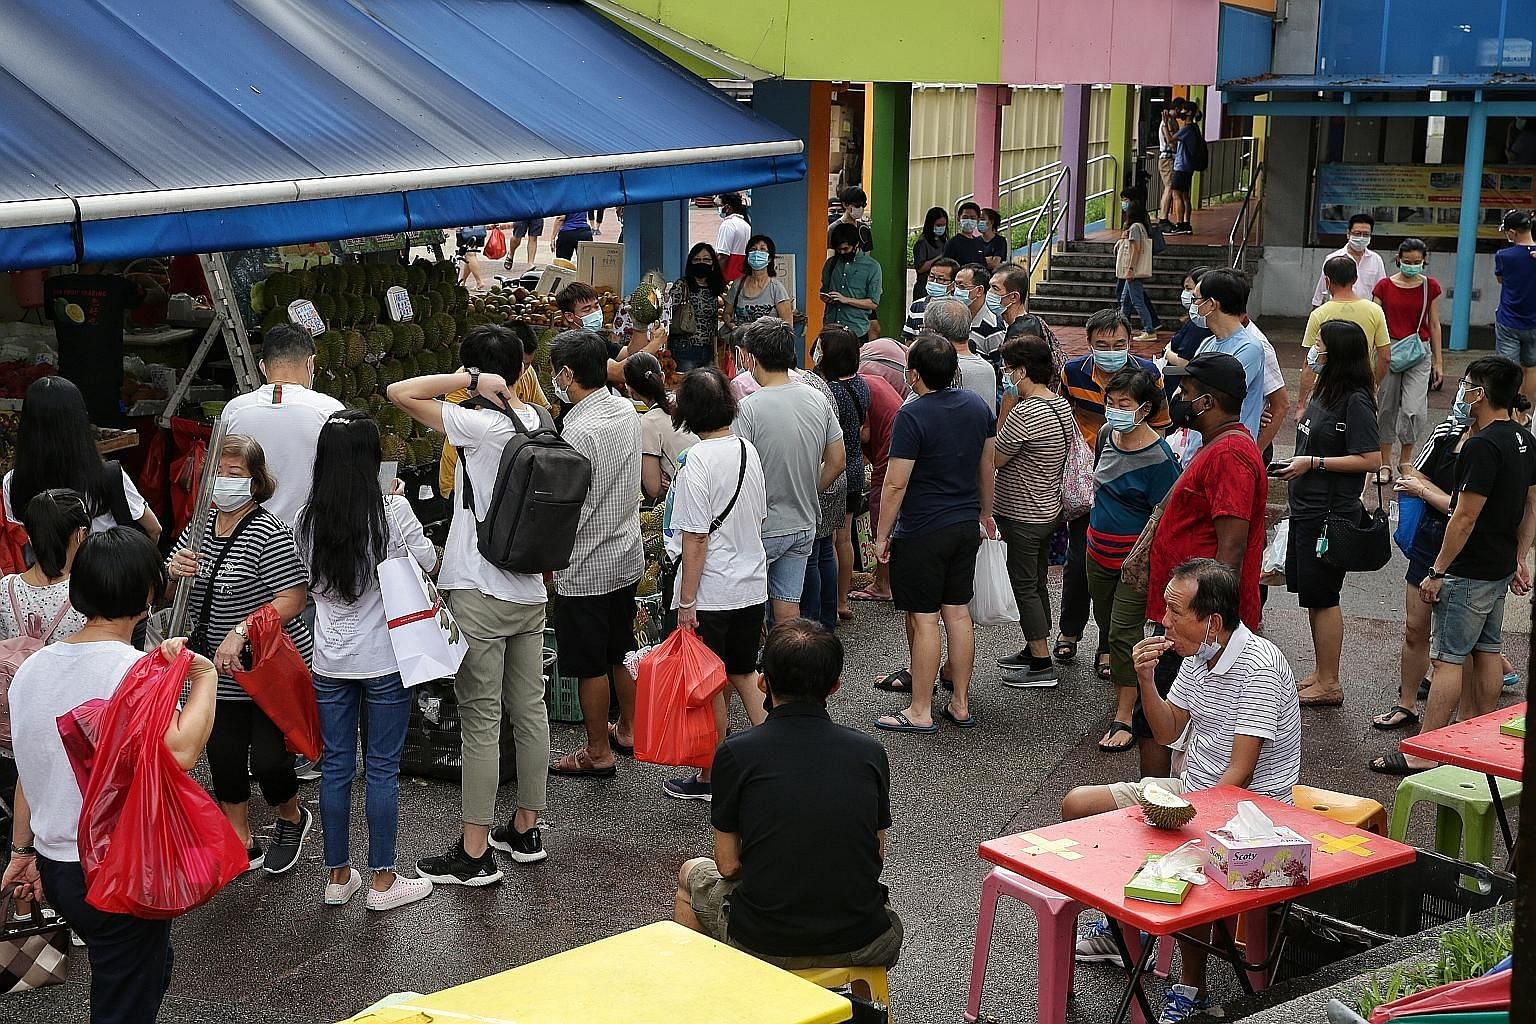 As some queue at their favourite stalls at Tiong Bahru Market hawker centre, others eagerly tuck into their breakfast after so many weeks of not being able to have meals at eateries. People queueing at the Din Tai Fung restaurant at Jem shopping mall